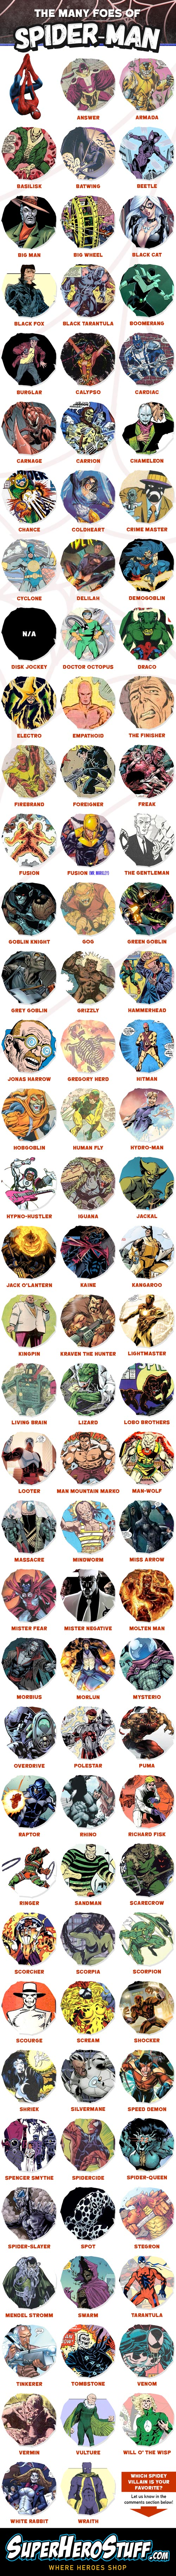 Many Villains of Spider-Man Infographic